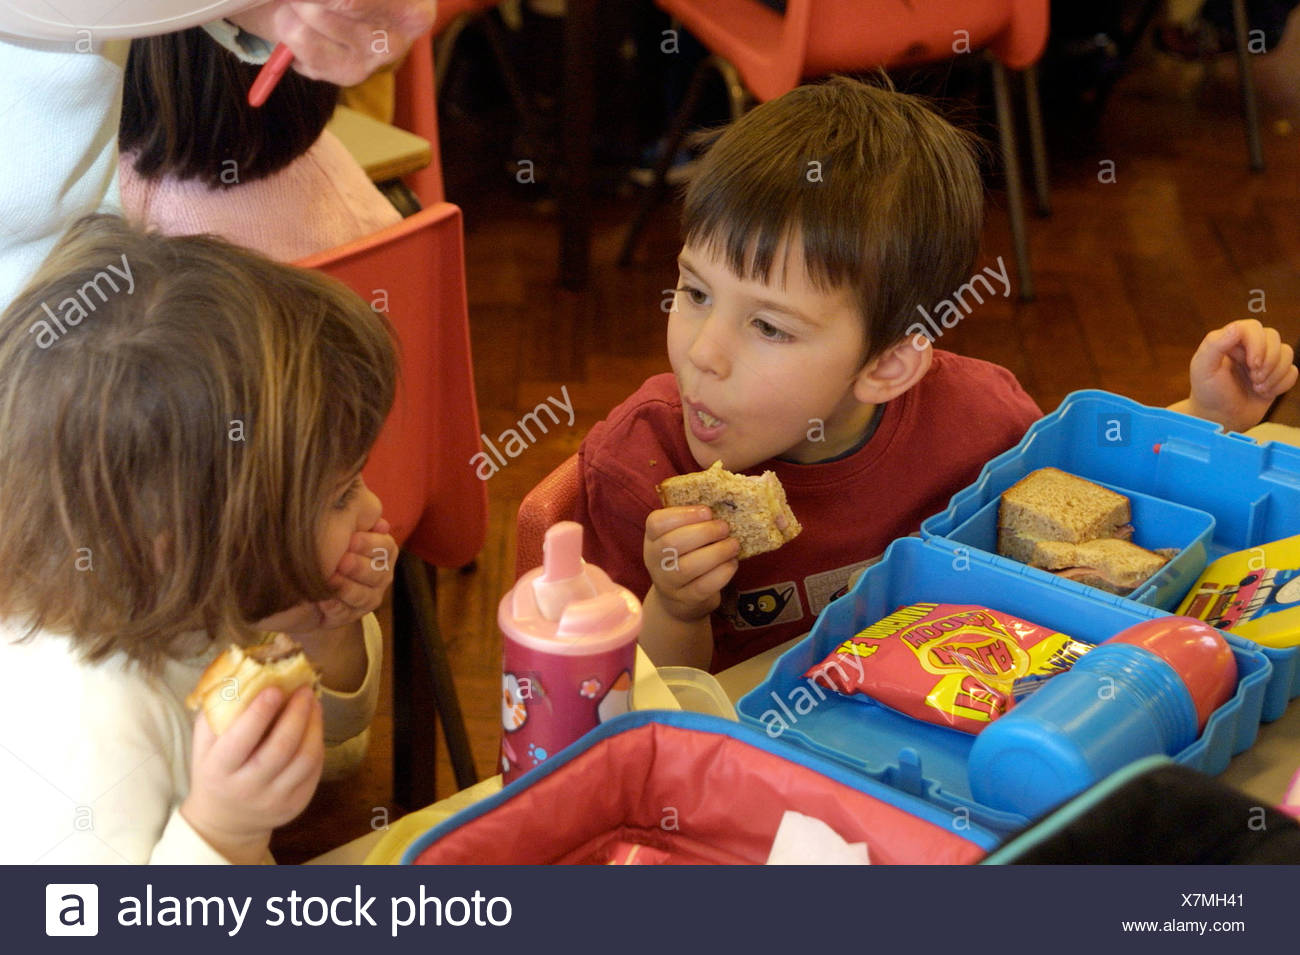 nursery school children eating packed lunch in cafeteria - Stock Image